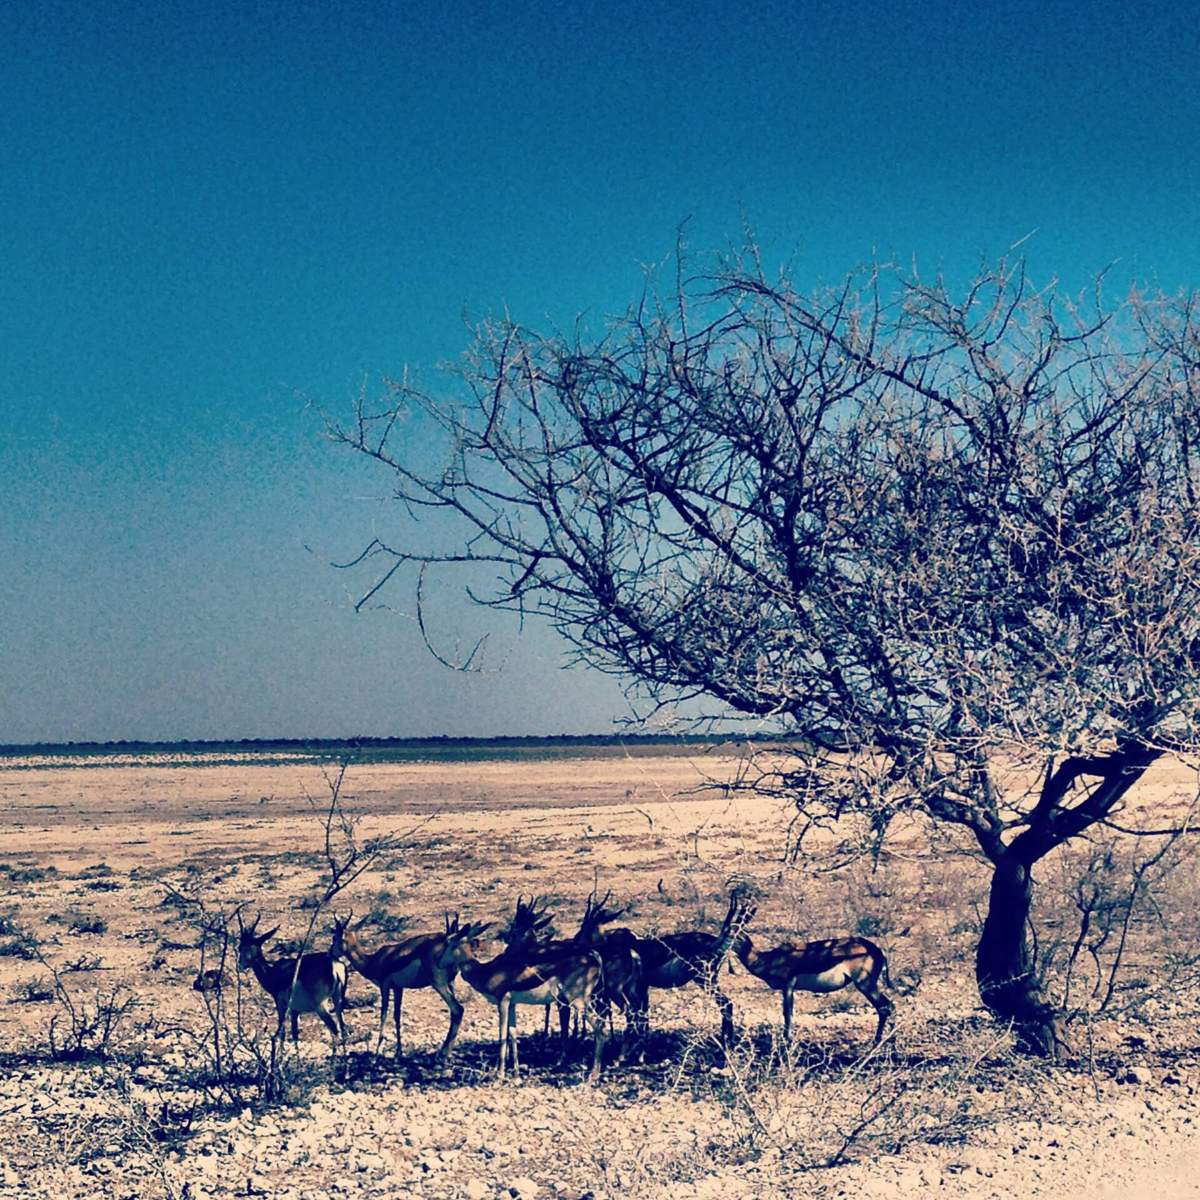 Wildtiere in Namibia